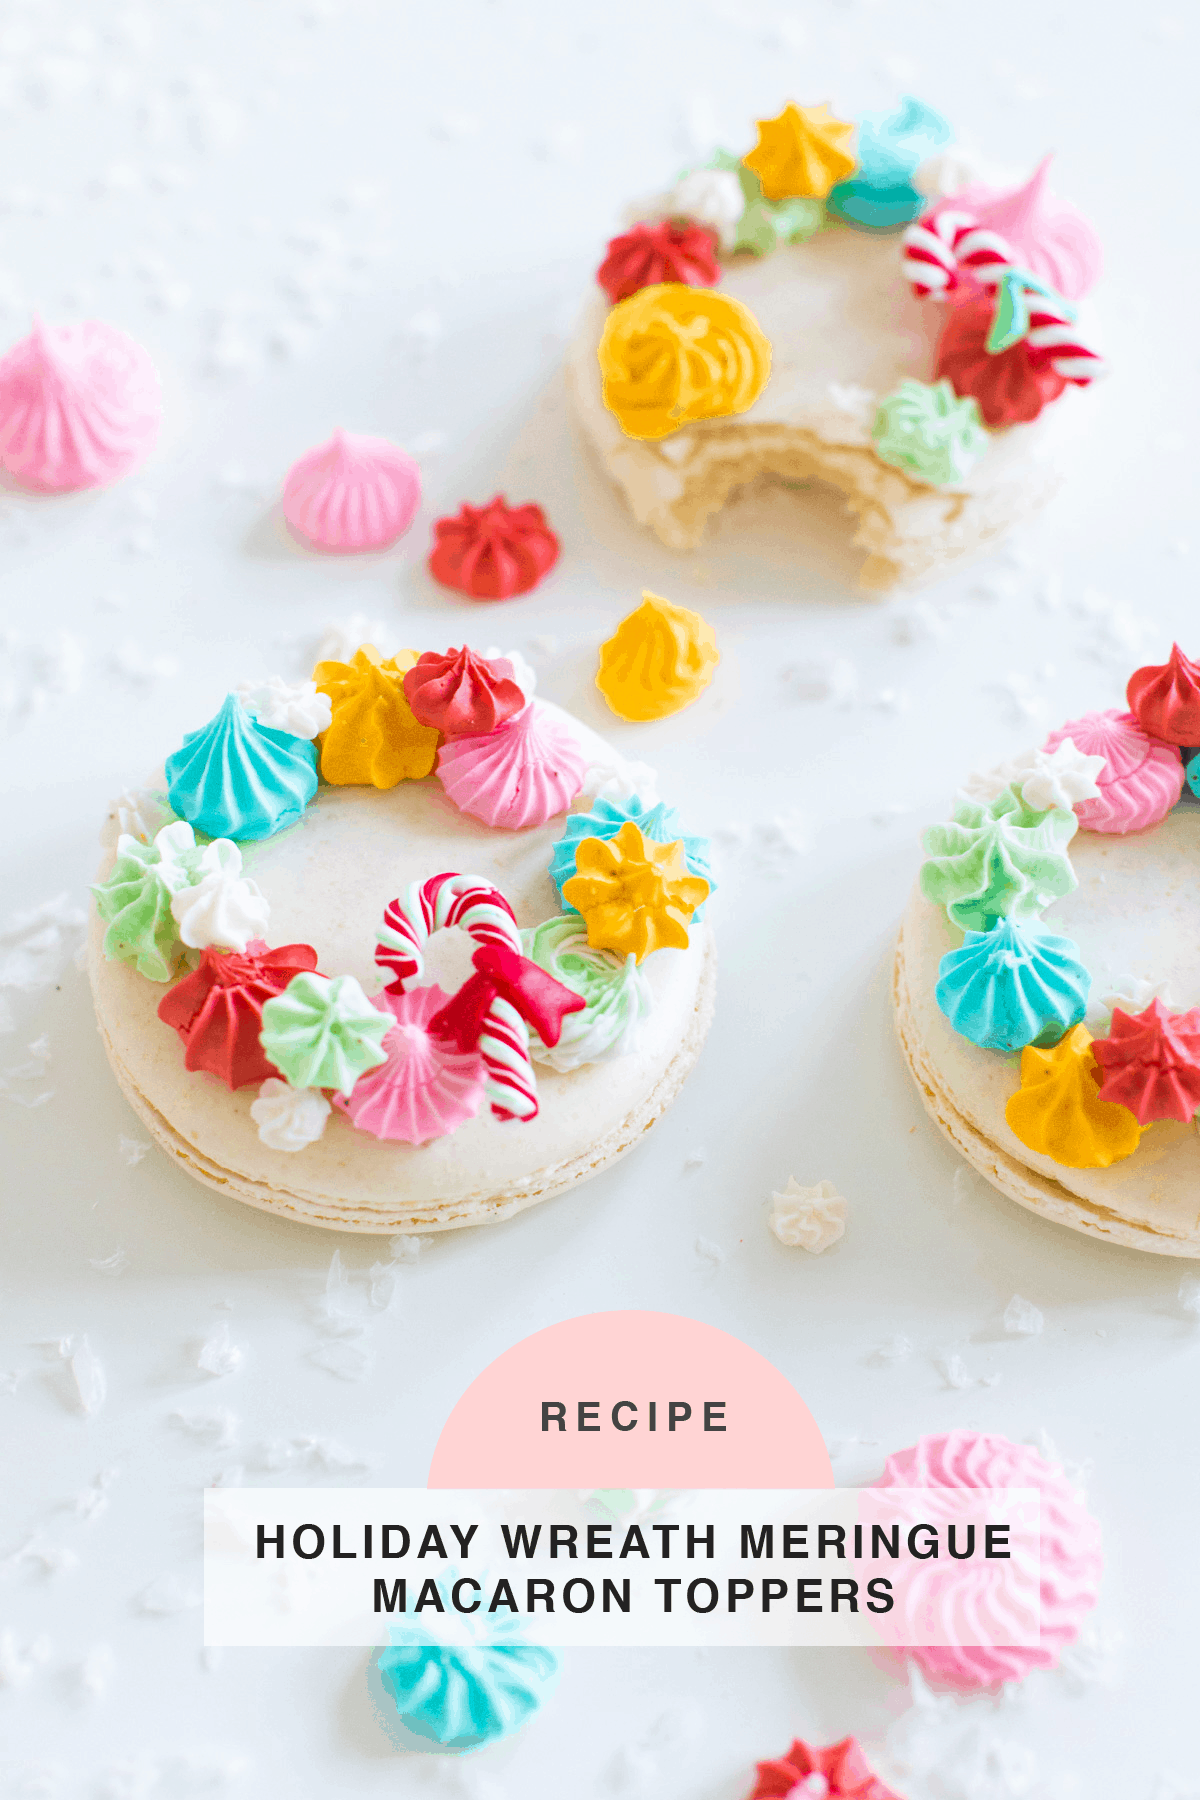 finished macarons How to Make Holiday Wreath Meringue Macarons by top Houston lifestyle blogger Ashley Rose of Sugar & Cloth #holiday #cookies #meringues #wreath #christmas #ideas